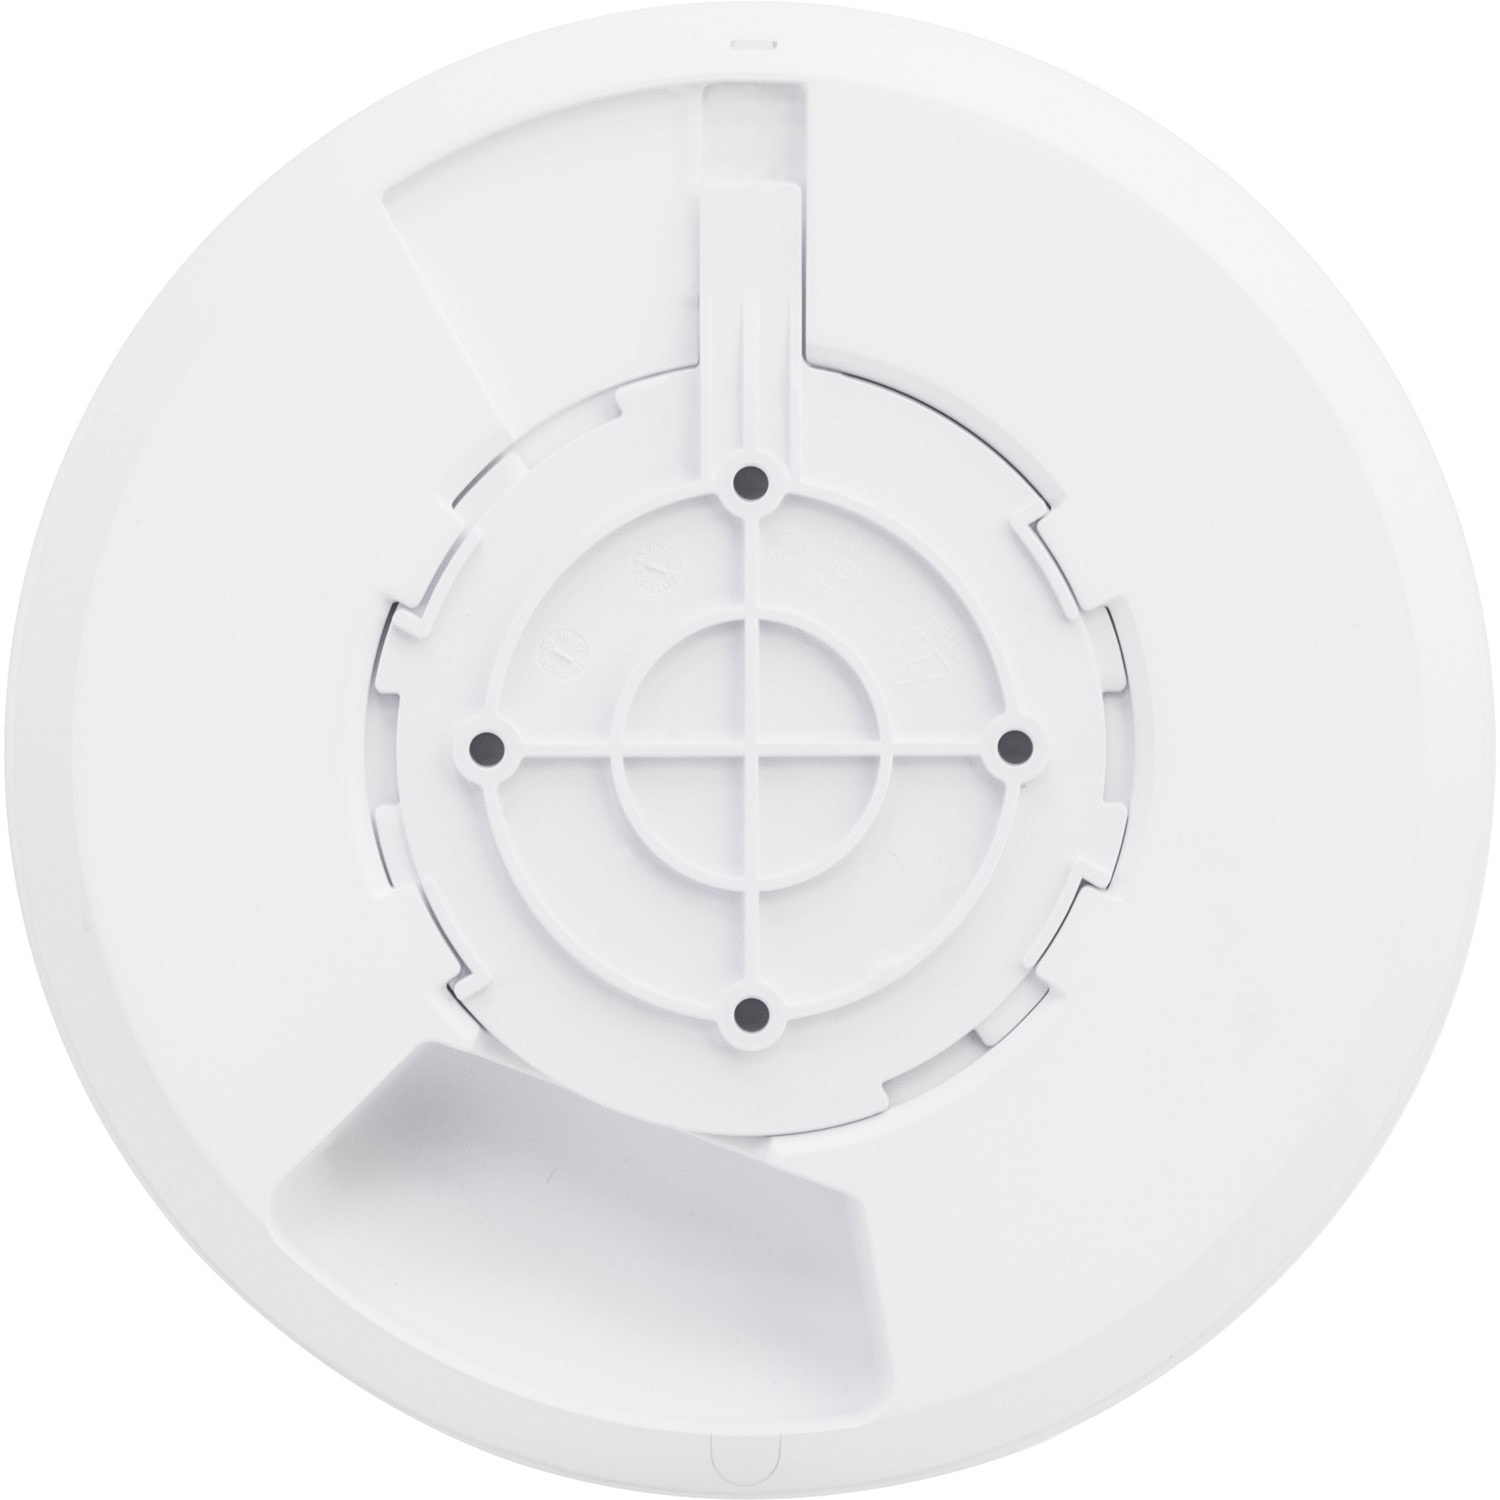 Buy Ubiquiti UniFi UAP-AC-LR IEEE 802 11ac 867 Mbit/s Wireless